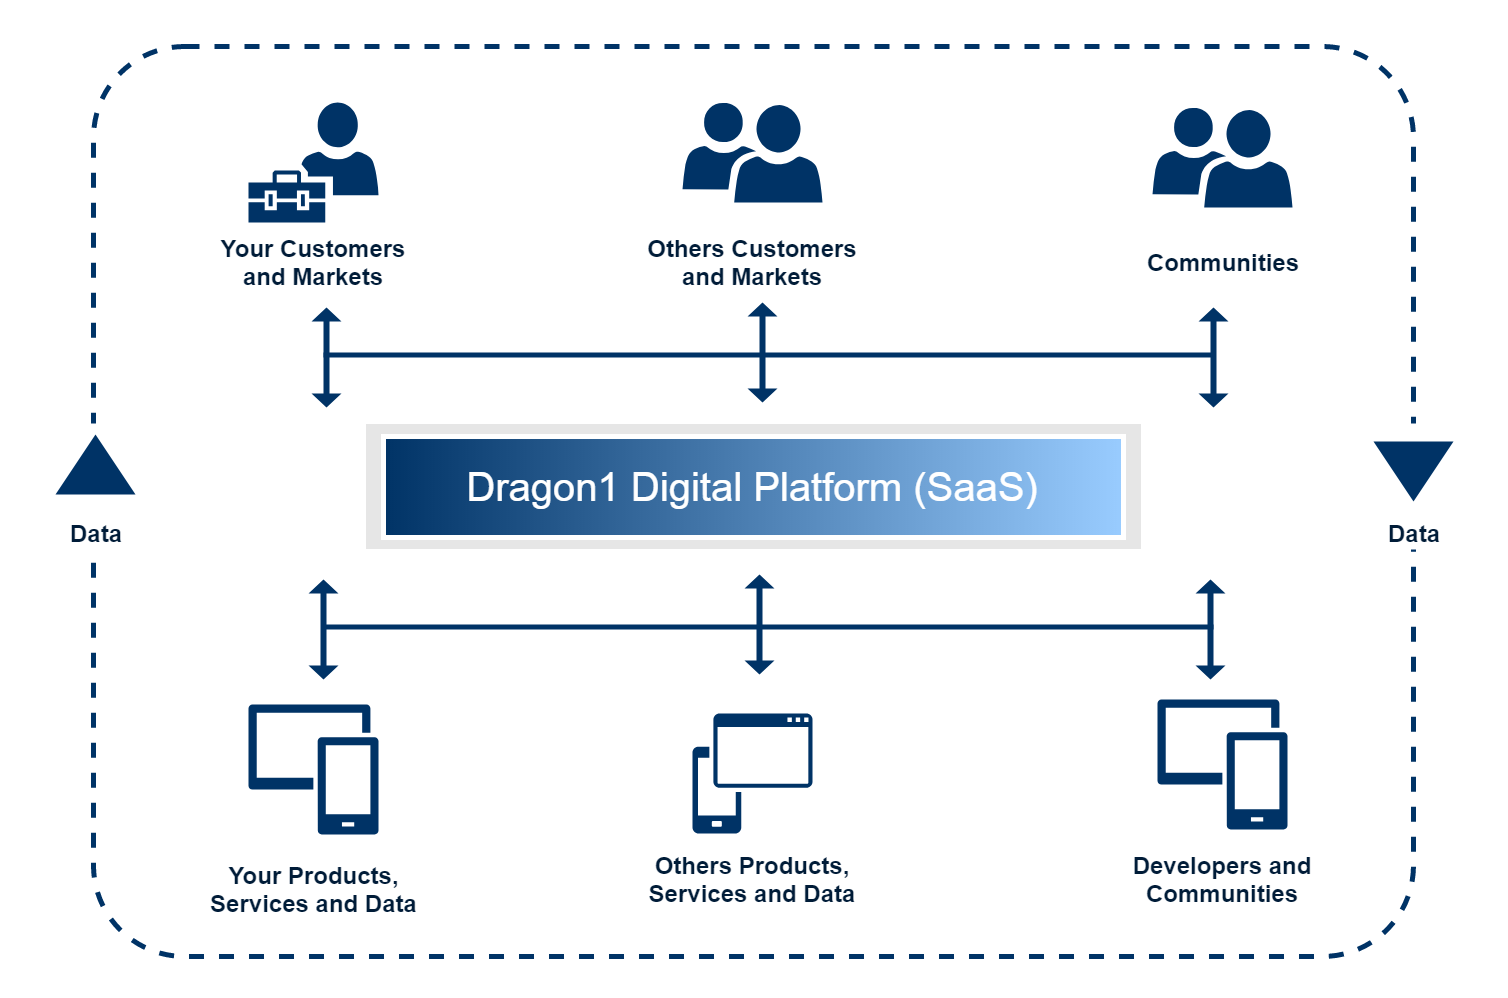 dragon1 digital platform for enterprise architecture